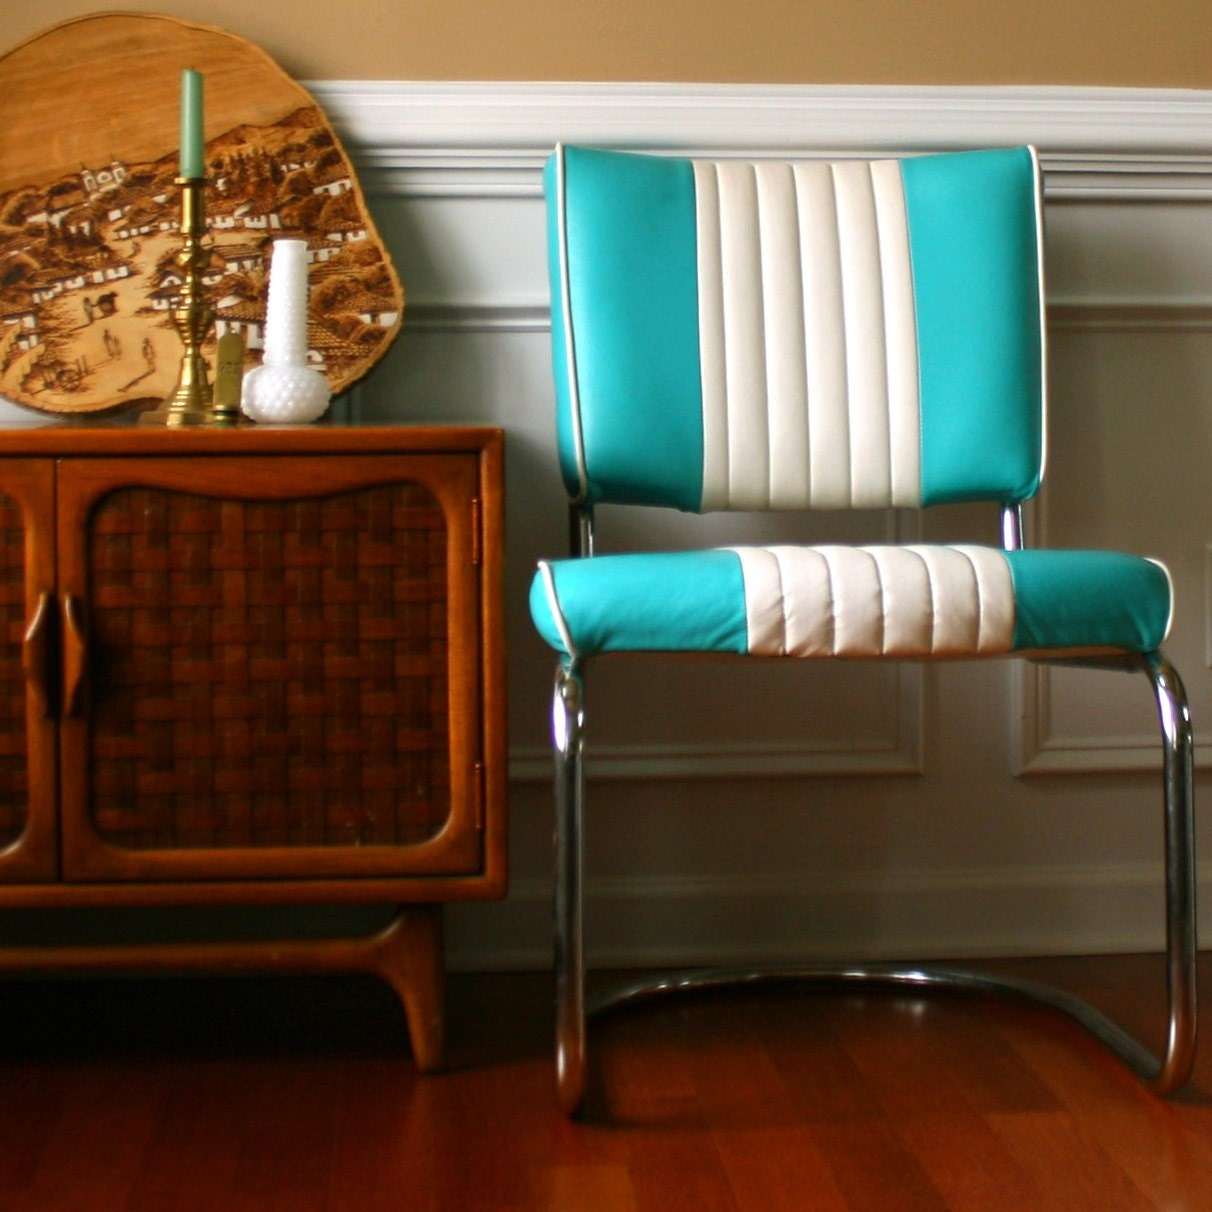 Vintage Turquoise Chair Retro Diner Style By Rhapsodyattic